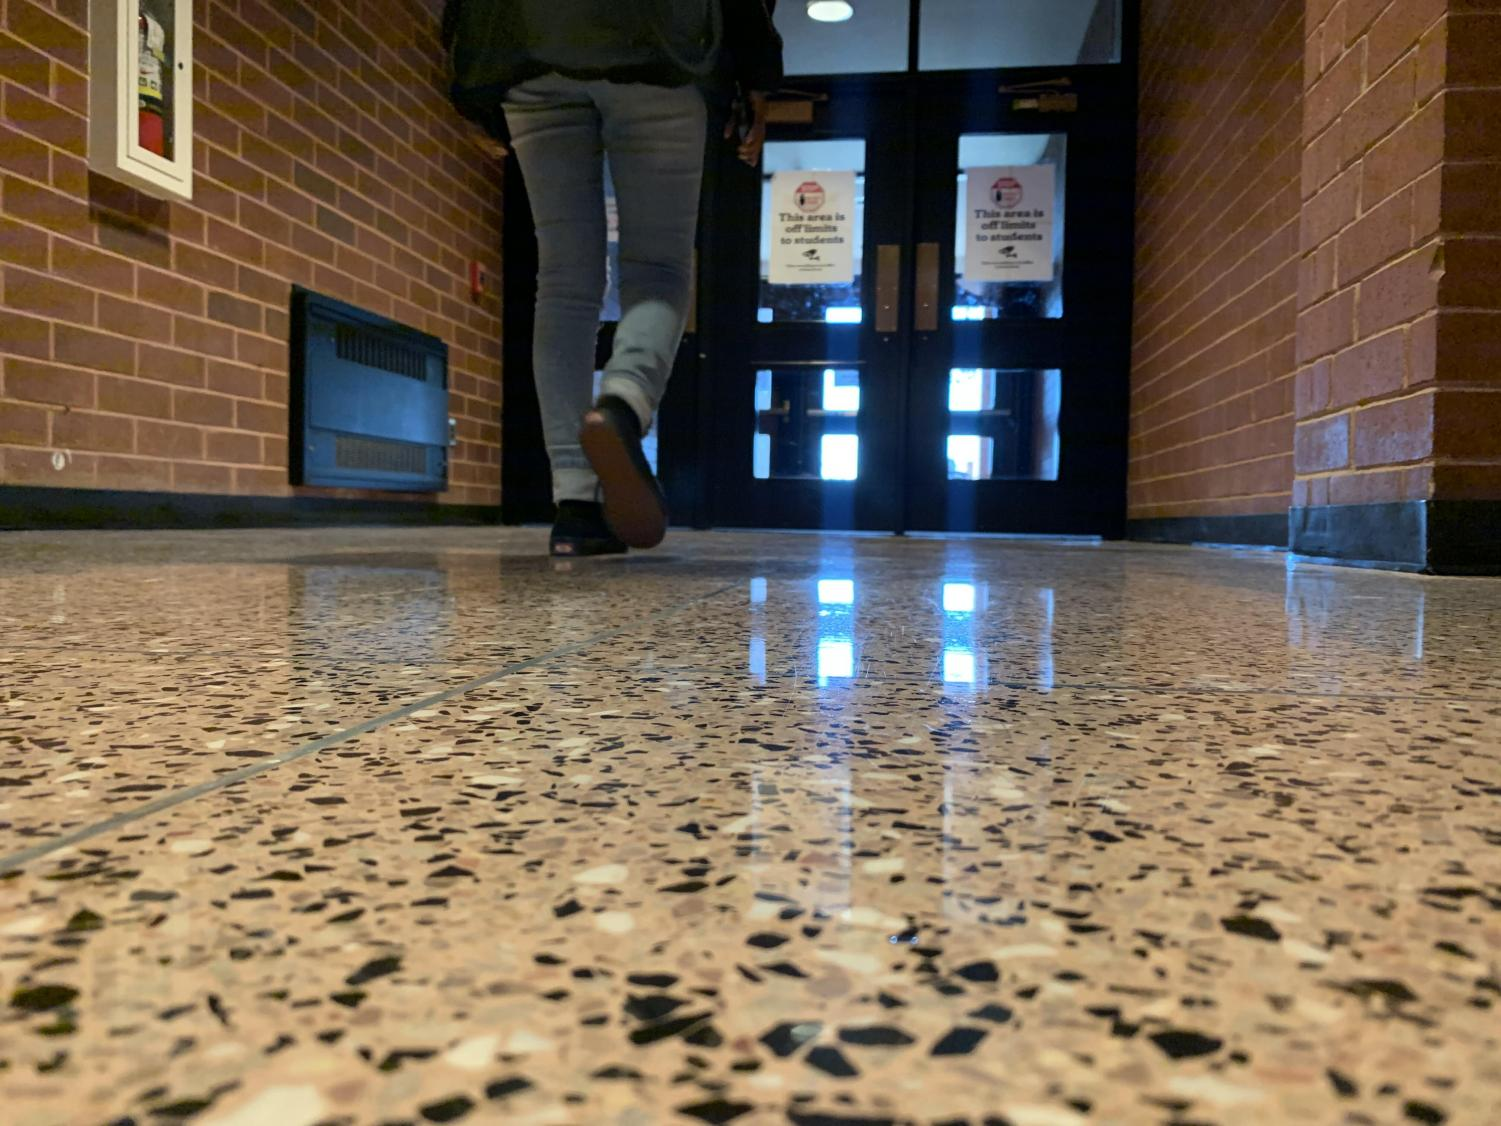 "Blessed Asare walks through the ""off limits"" door after the 3:21 bell rings. Students throughout the school use these doors to exit the building faster than leaving by the front entrance."